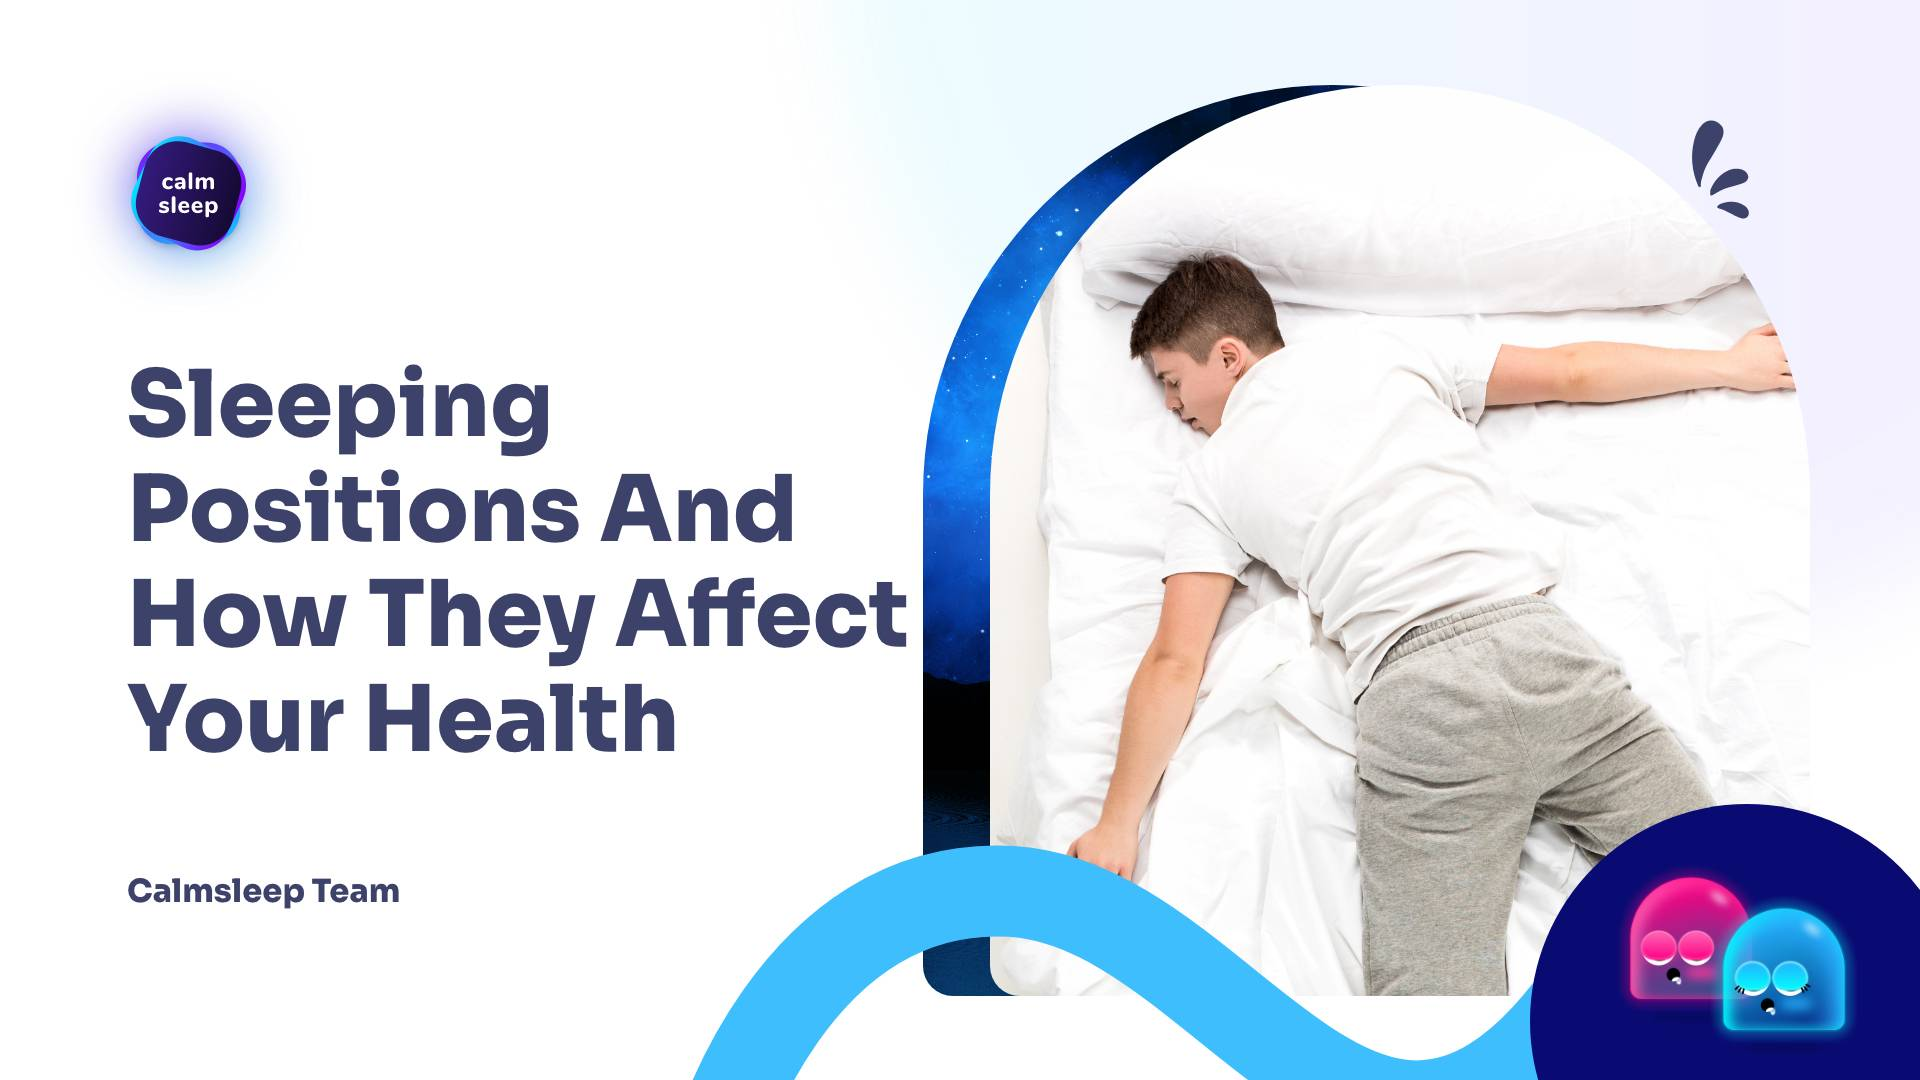 Sleeping Positions And How They Affect Your Health